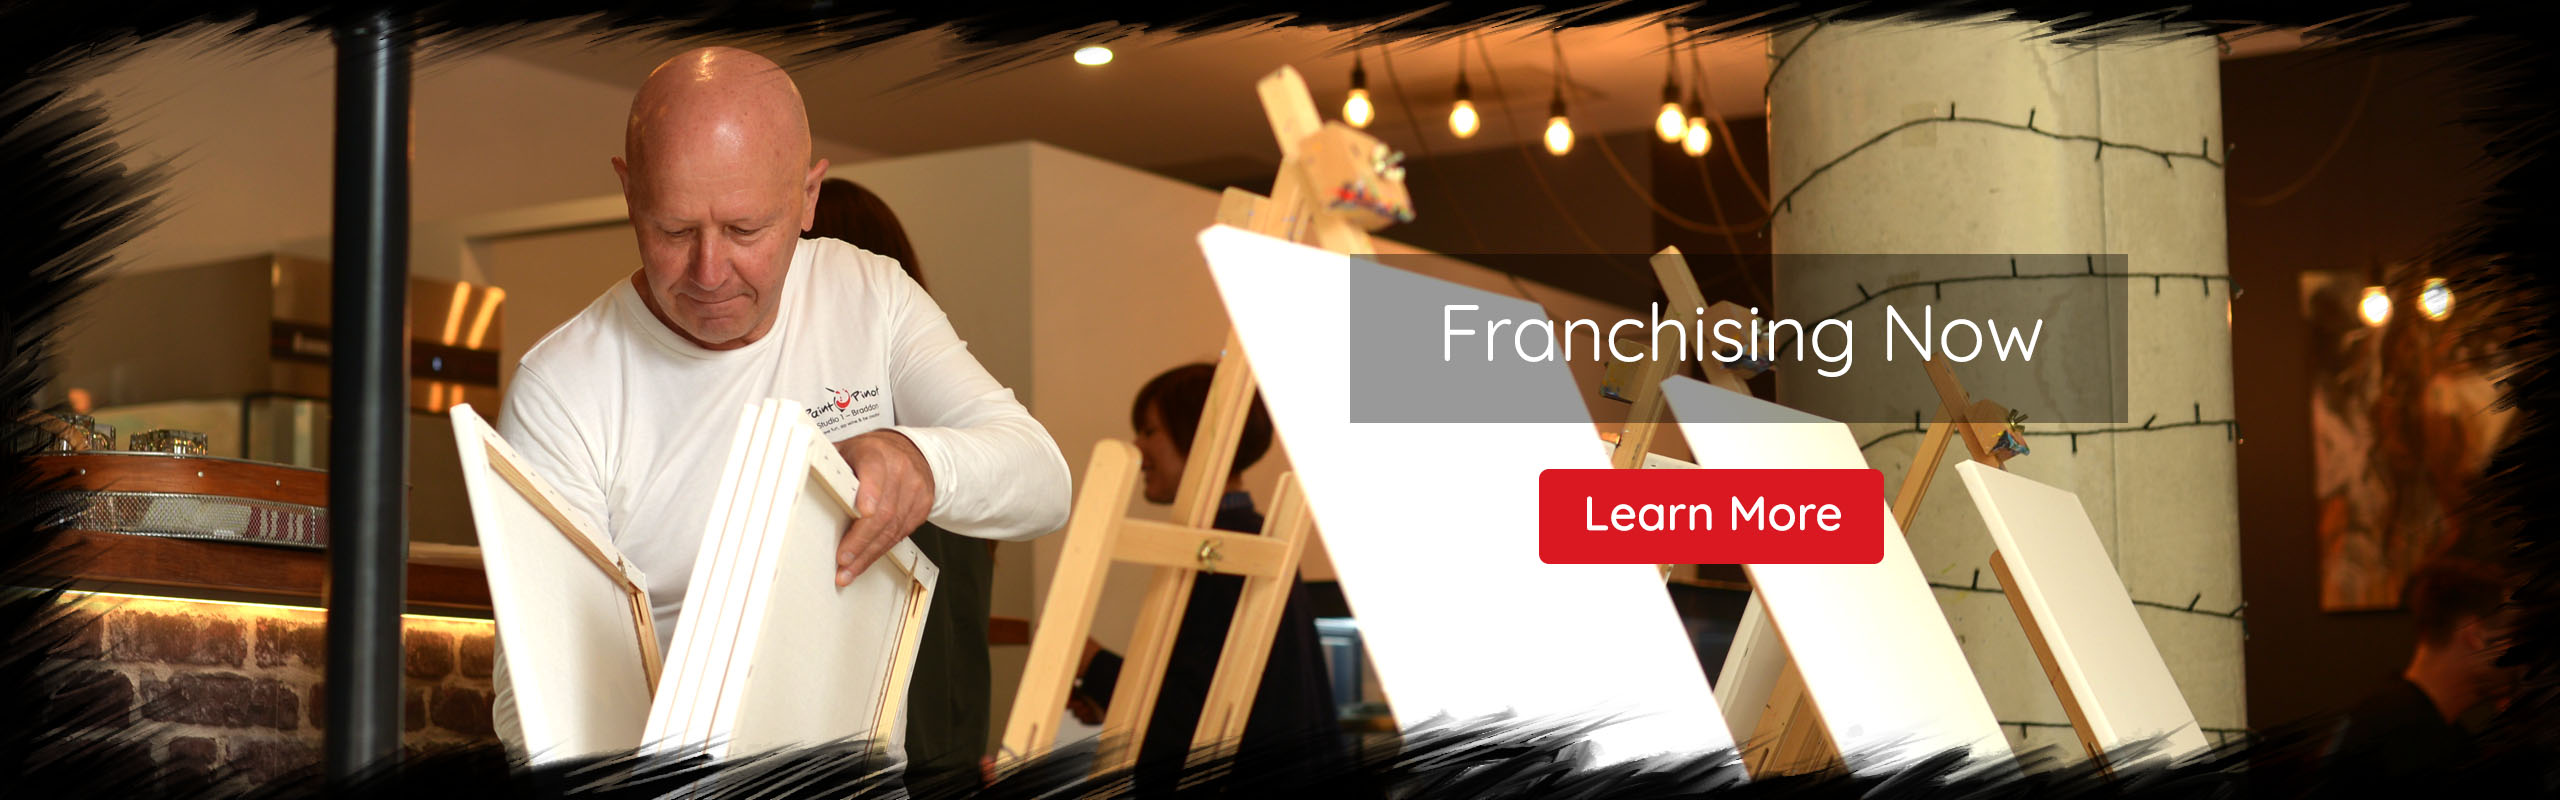 Paint Pinot, Franchising Now, Learn More